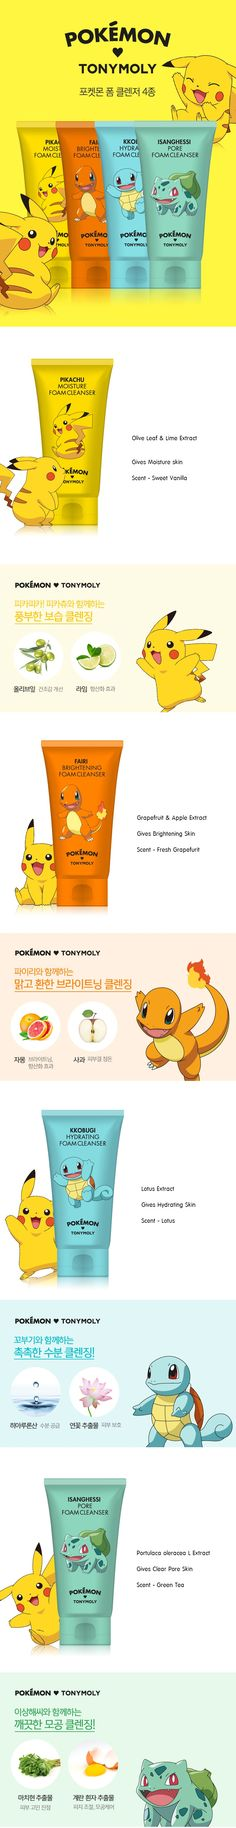 TONYMOLY Pokemon Foam Cleanser 150ml    Features  TONYMOLY x Pokemon Edition ! A Pokemon edition foam clenaser 4 Type #PIKACHU: Vanilla Scent (contains olive leaf and lime extract) #FAIRI : Grapefruit Scent (contains grapefruit and apple extract) #KKOBUGI